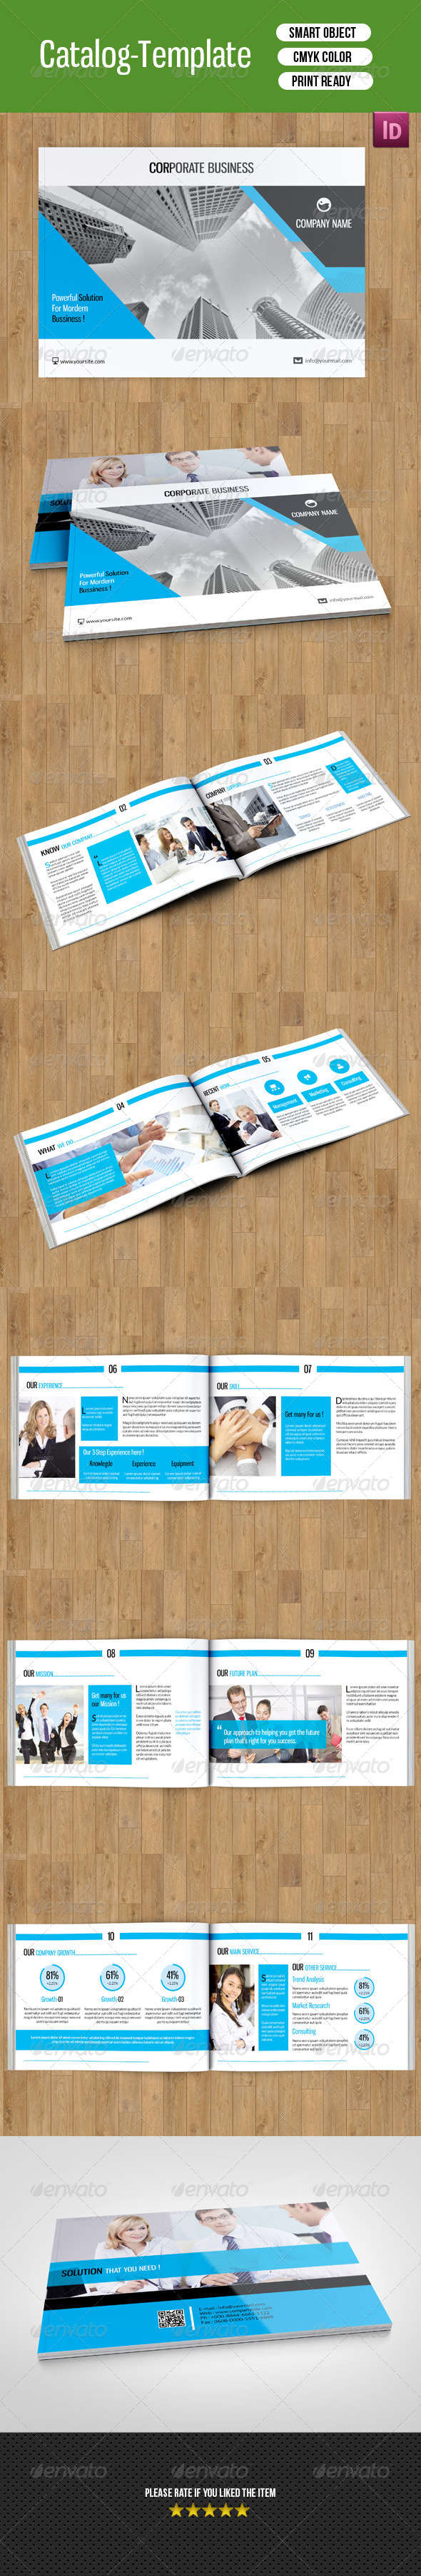 GraphicRiver Business Catalog Template-V32 8470059